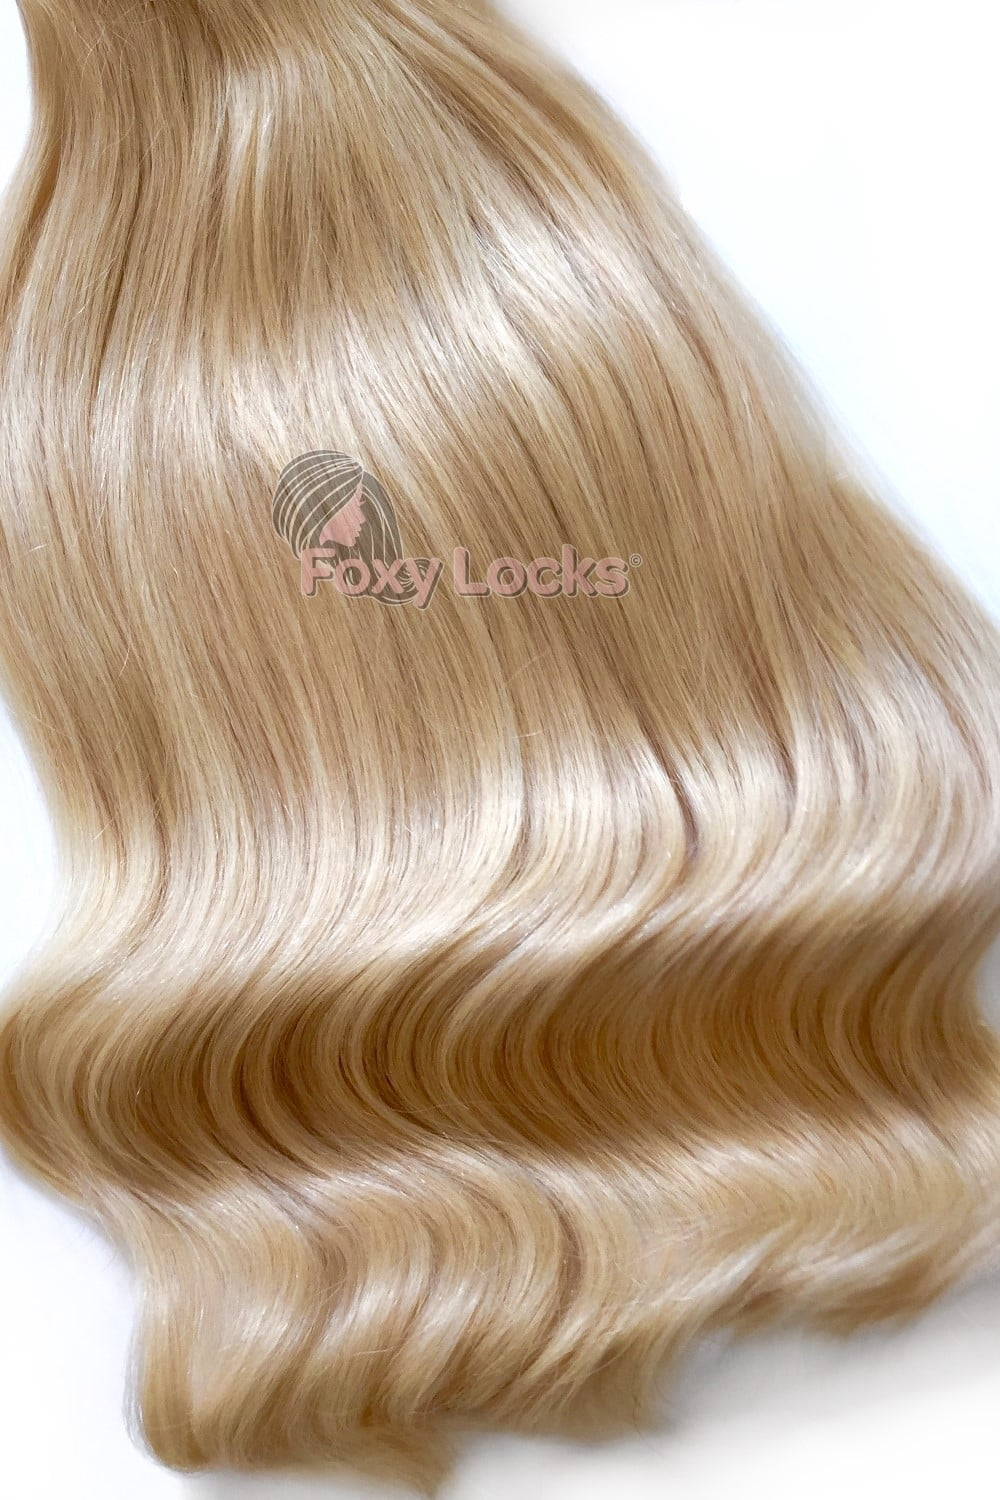 Hollywood Blonde Superior 20 Clip In Human Hair Extensions 230g